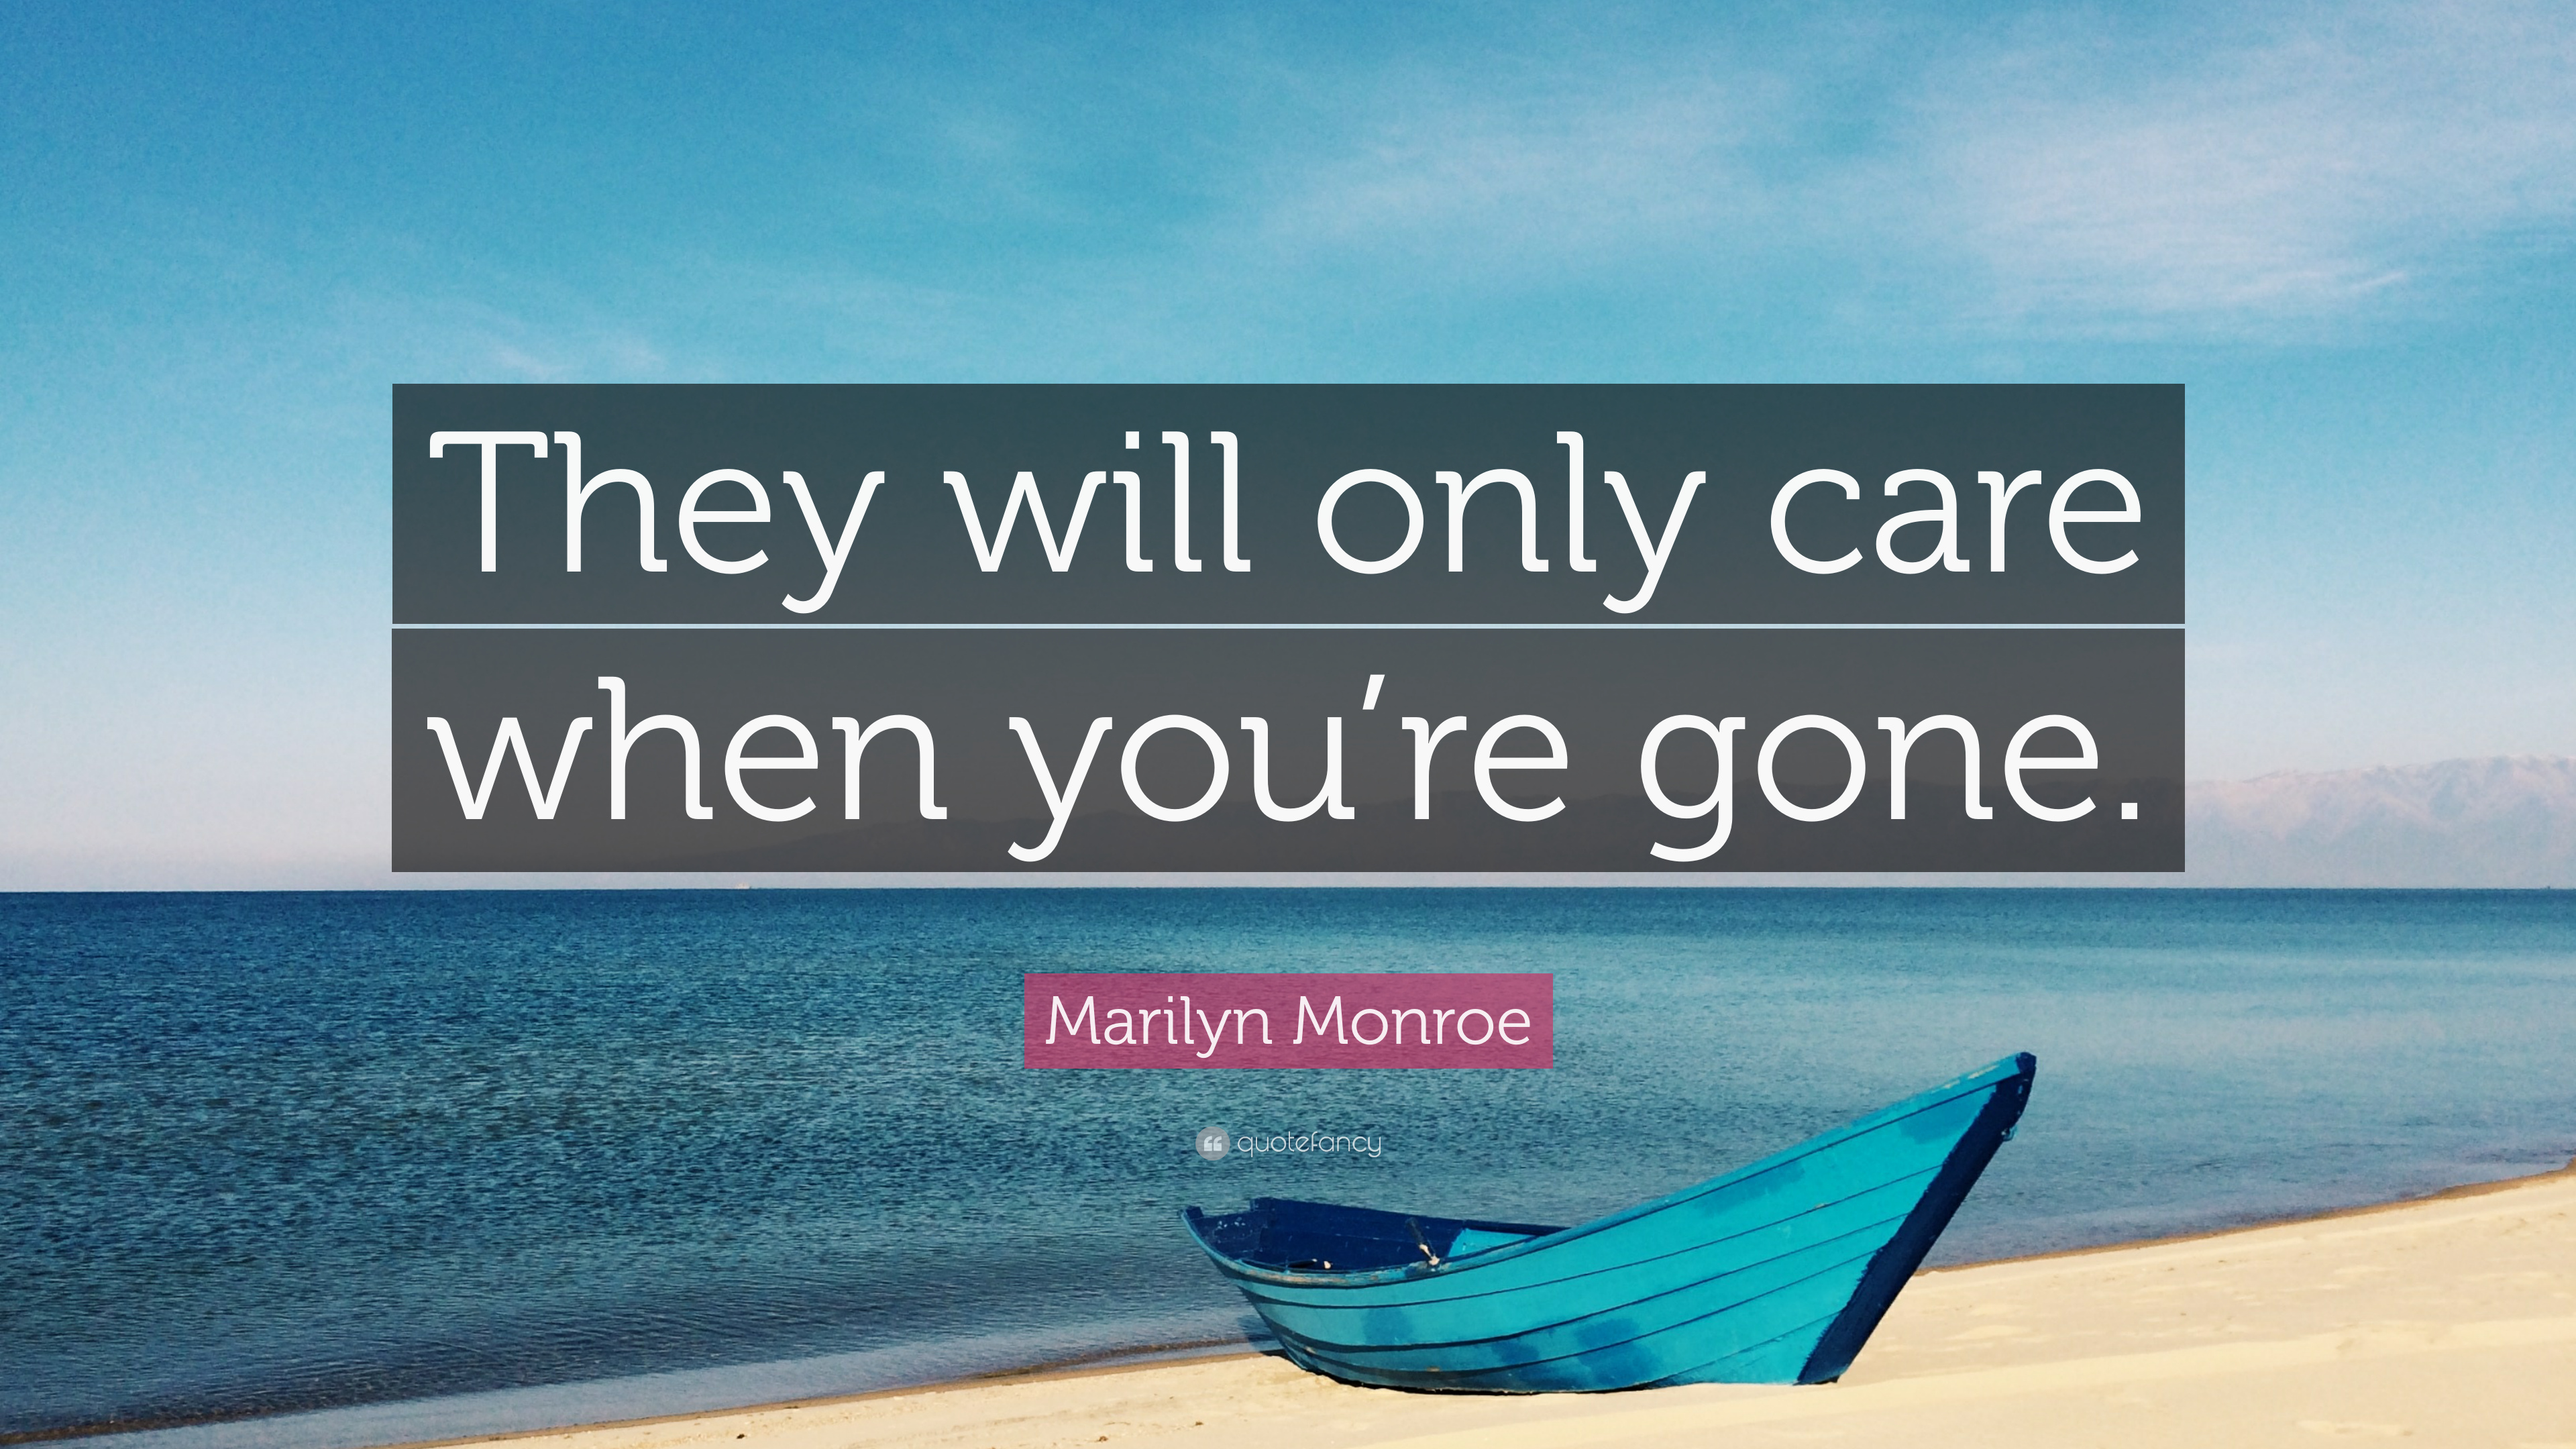 Marilyn Monroe Quote: They will only care when youre